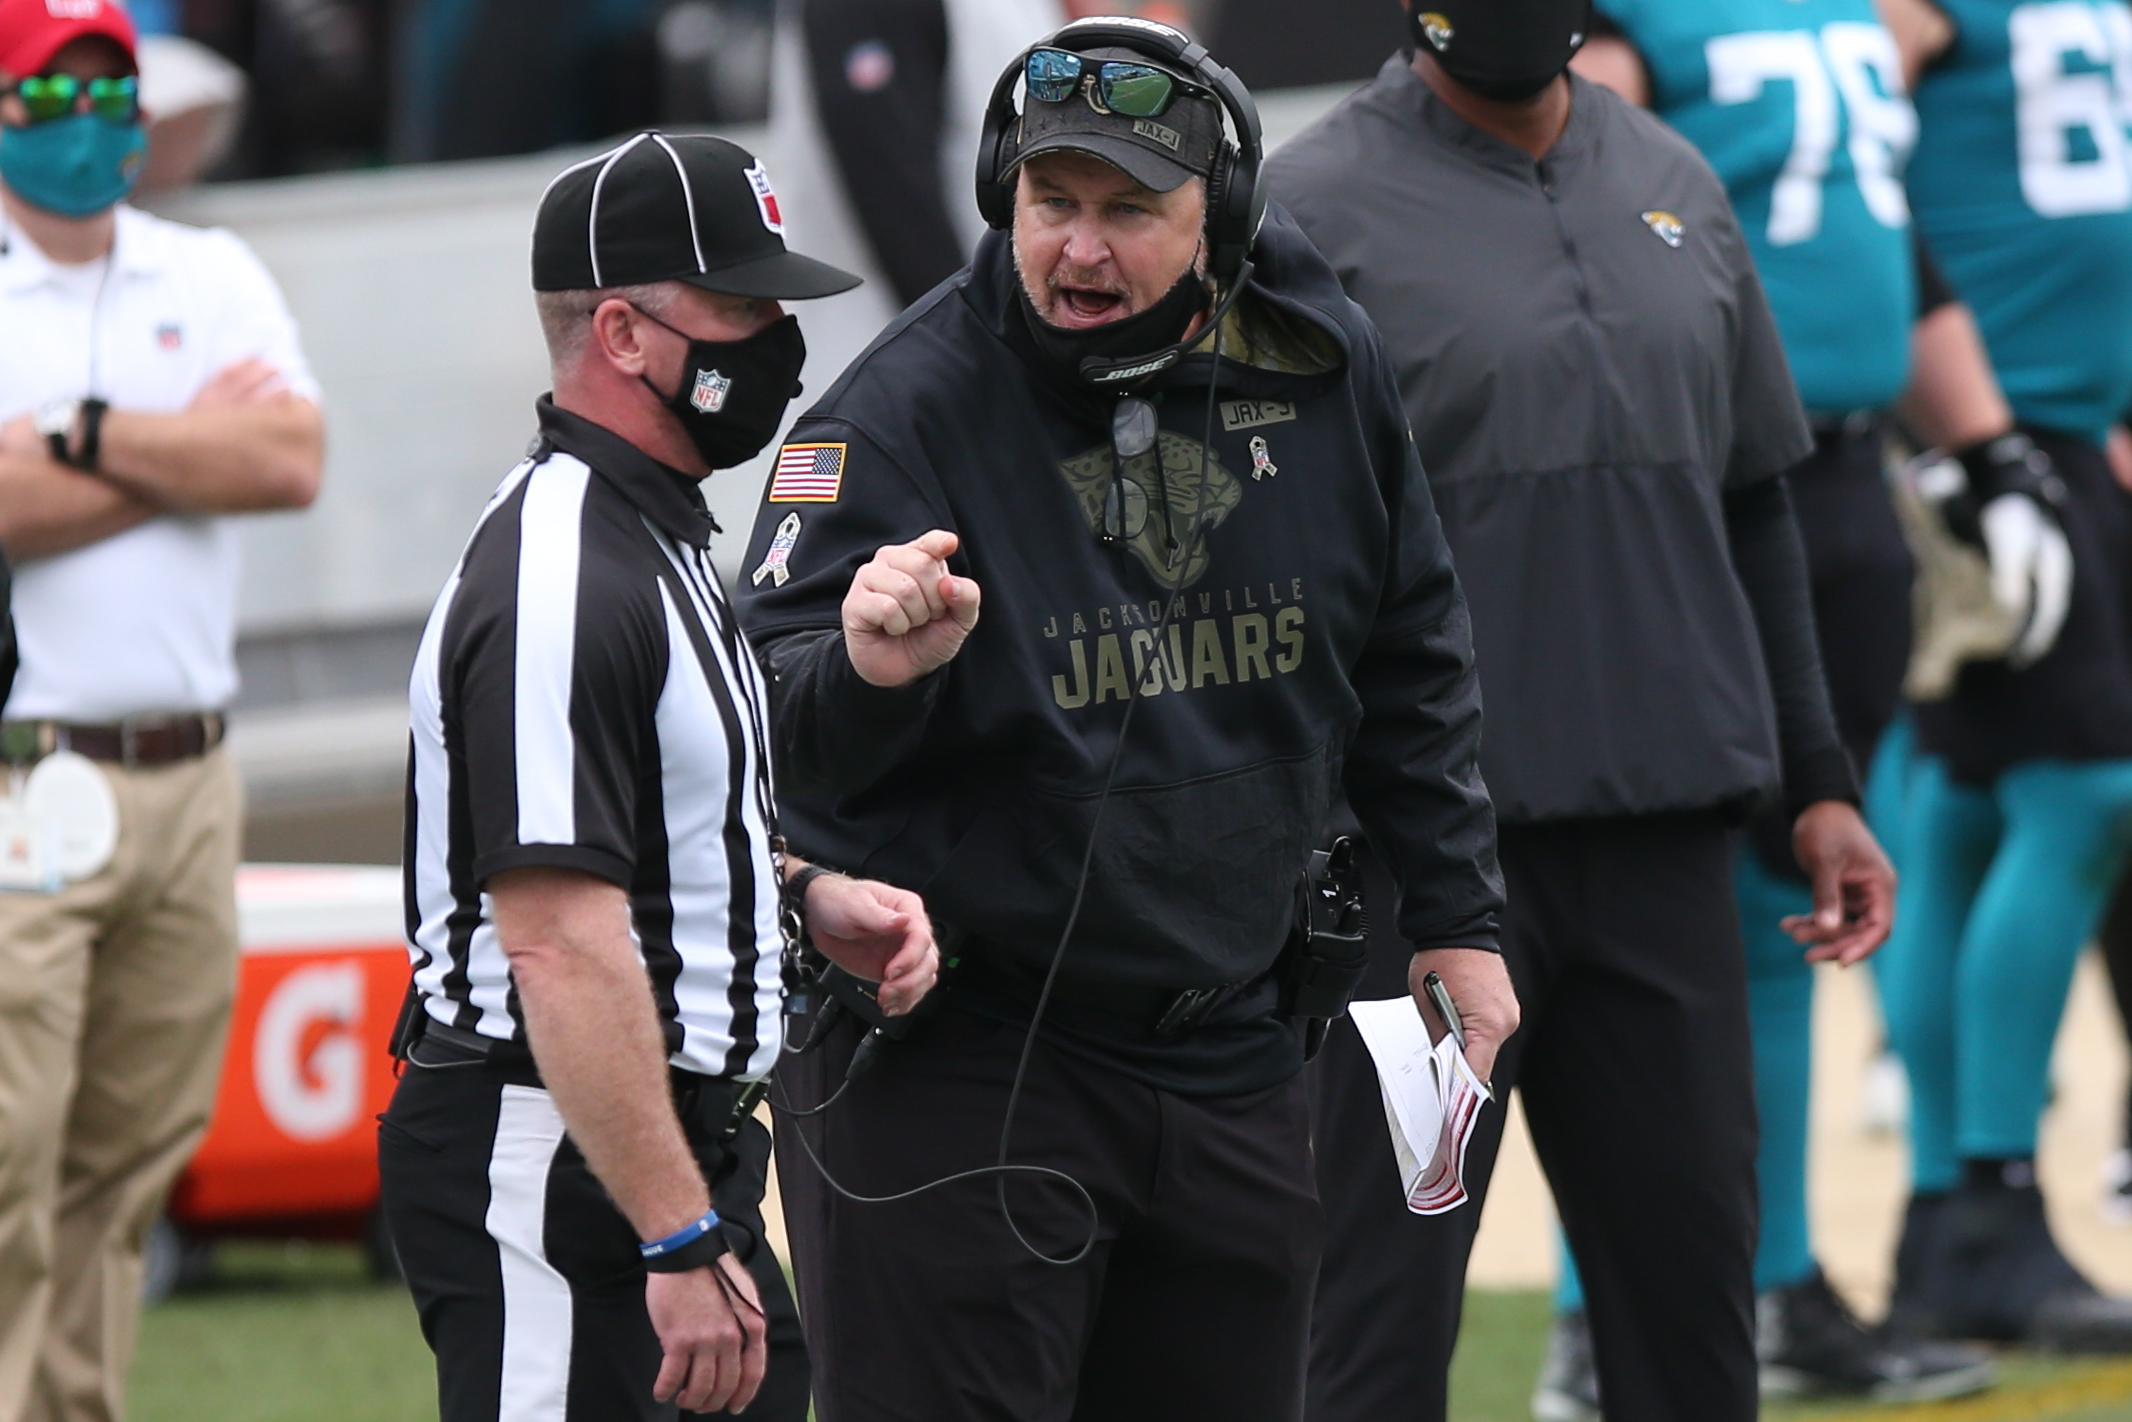 Doug Marrone once had the Jacksonville Jaguars a few minutes shy of reaching the Super Bowl. Now, Marrone leads our Week 10 NFL hot seat rankings.